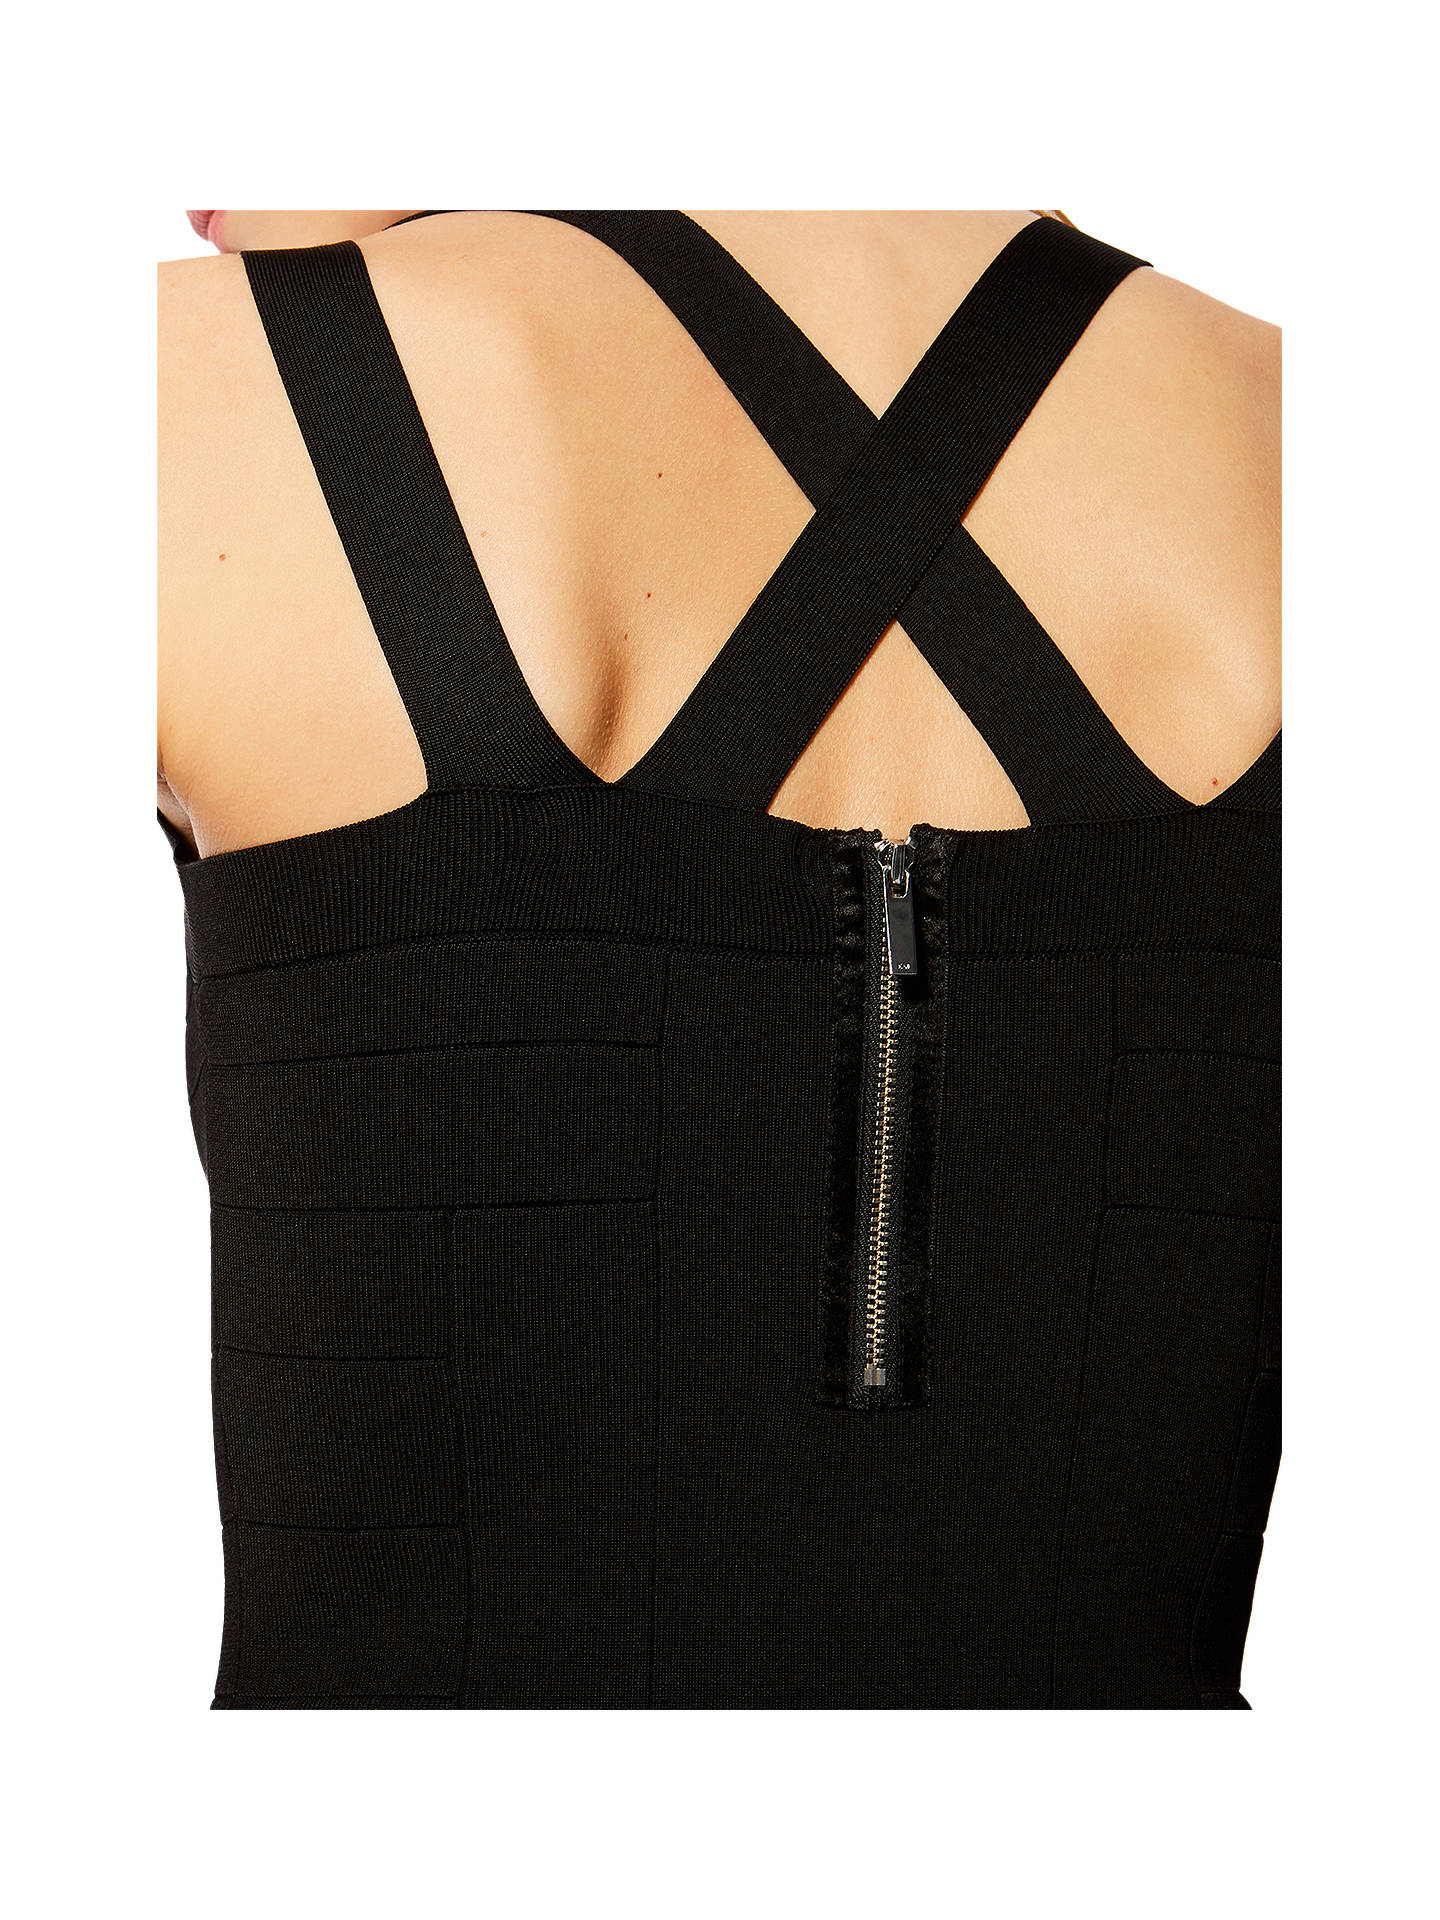 BuyKaren Millen Bandage Knit Bodycon Dress, Black, XS Online at johnlewis.com